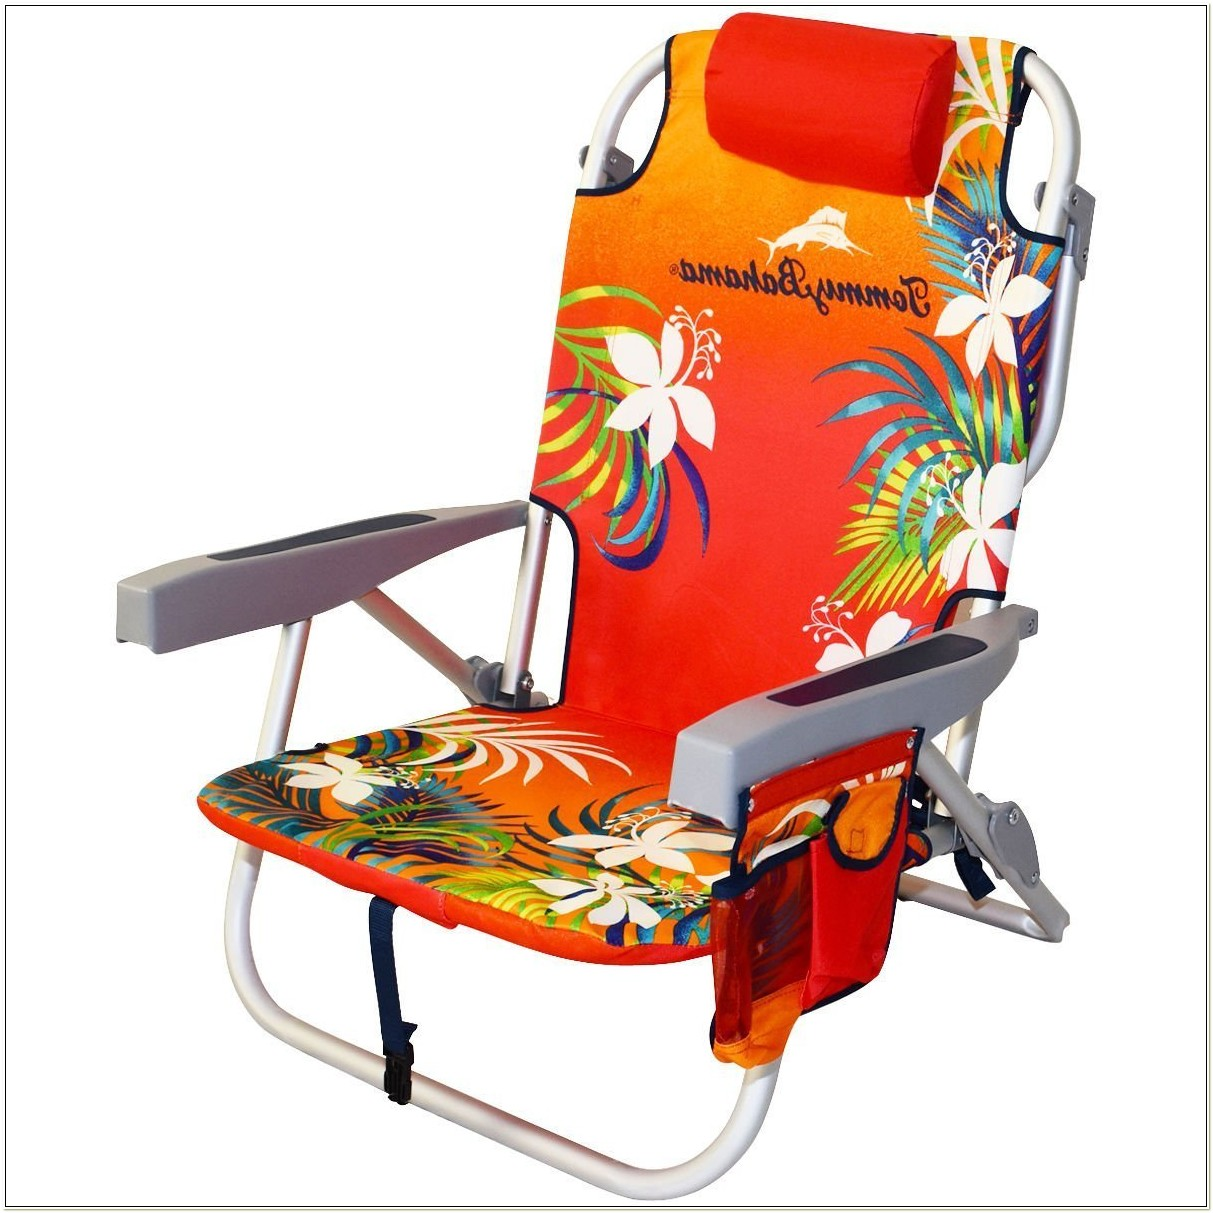 Tommy Bahama Orange Deluxe Backpack Beach Chair